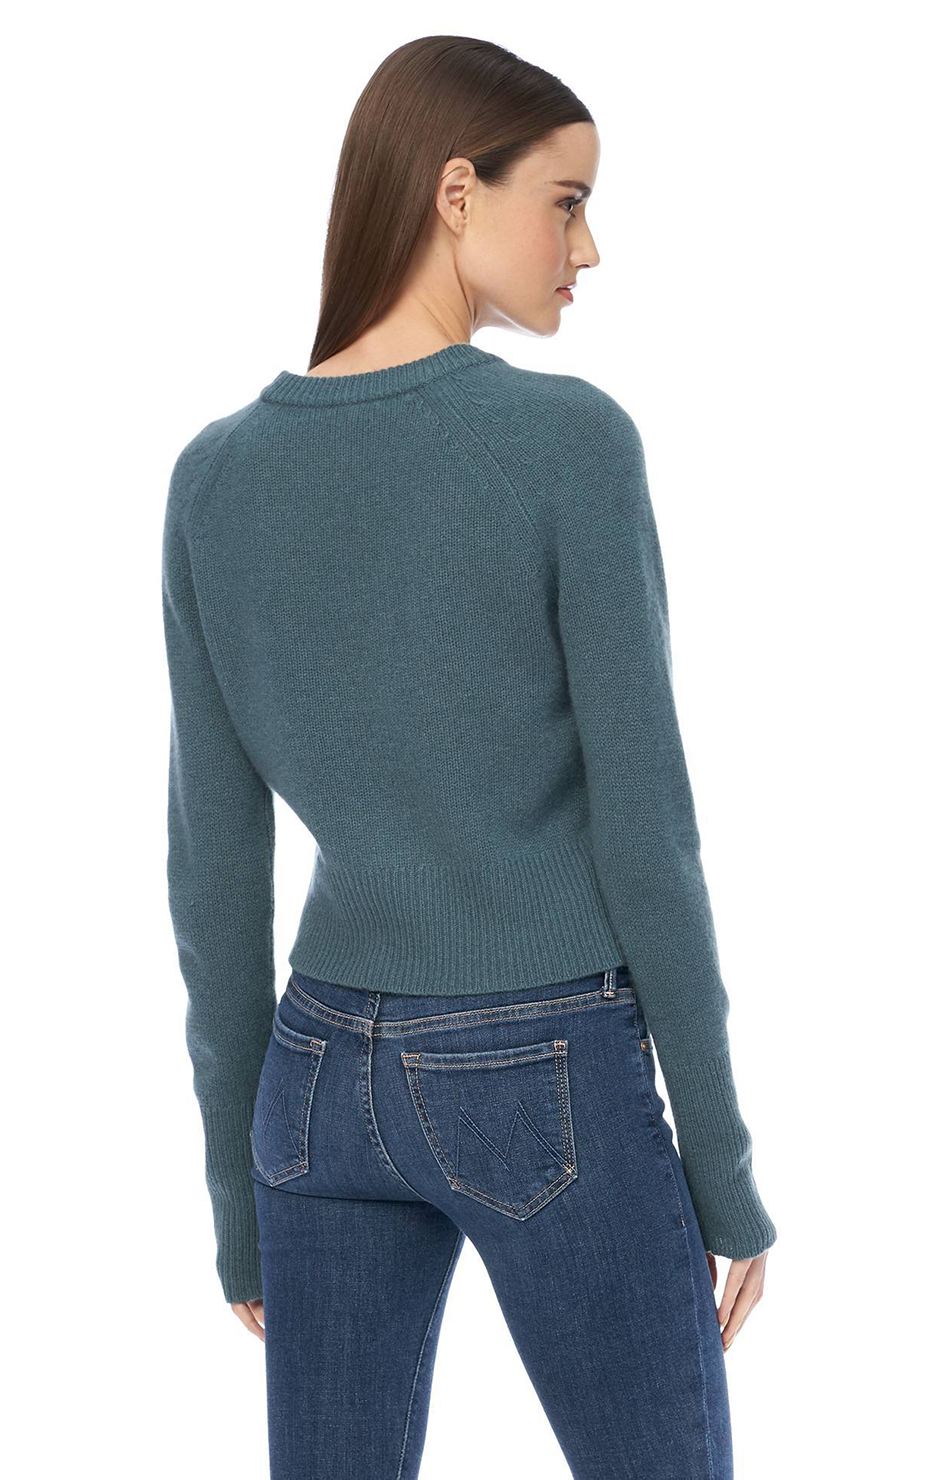 Jessika Cashmere Pullover - Teal